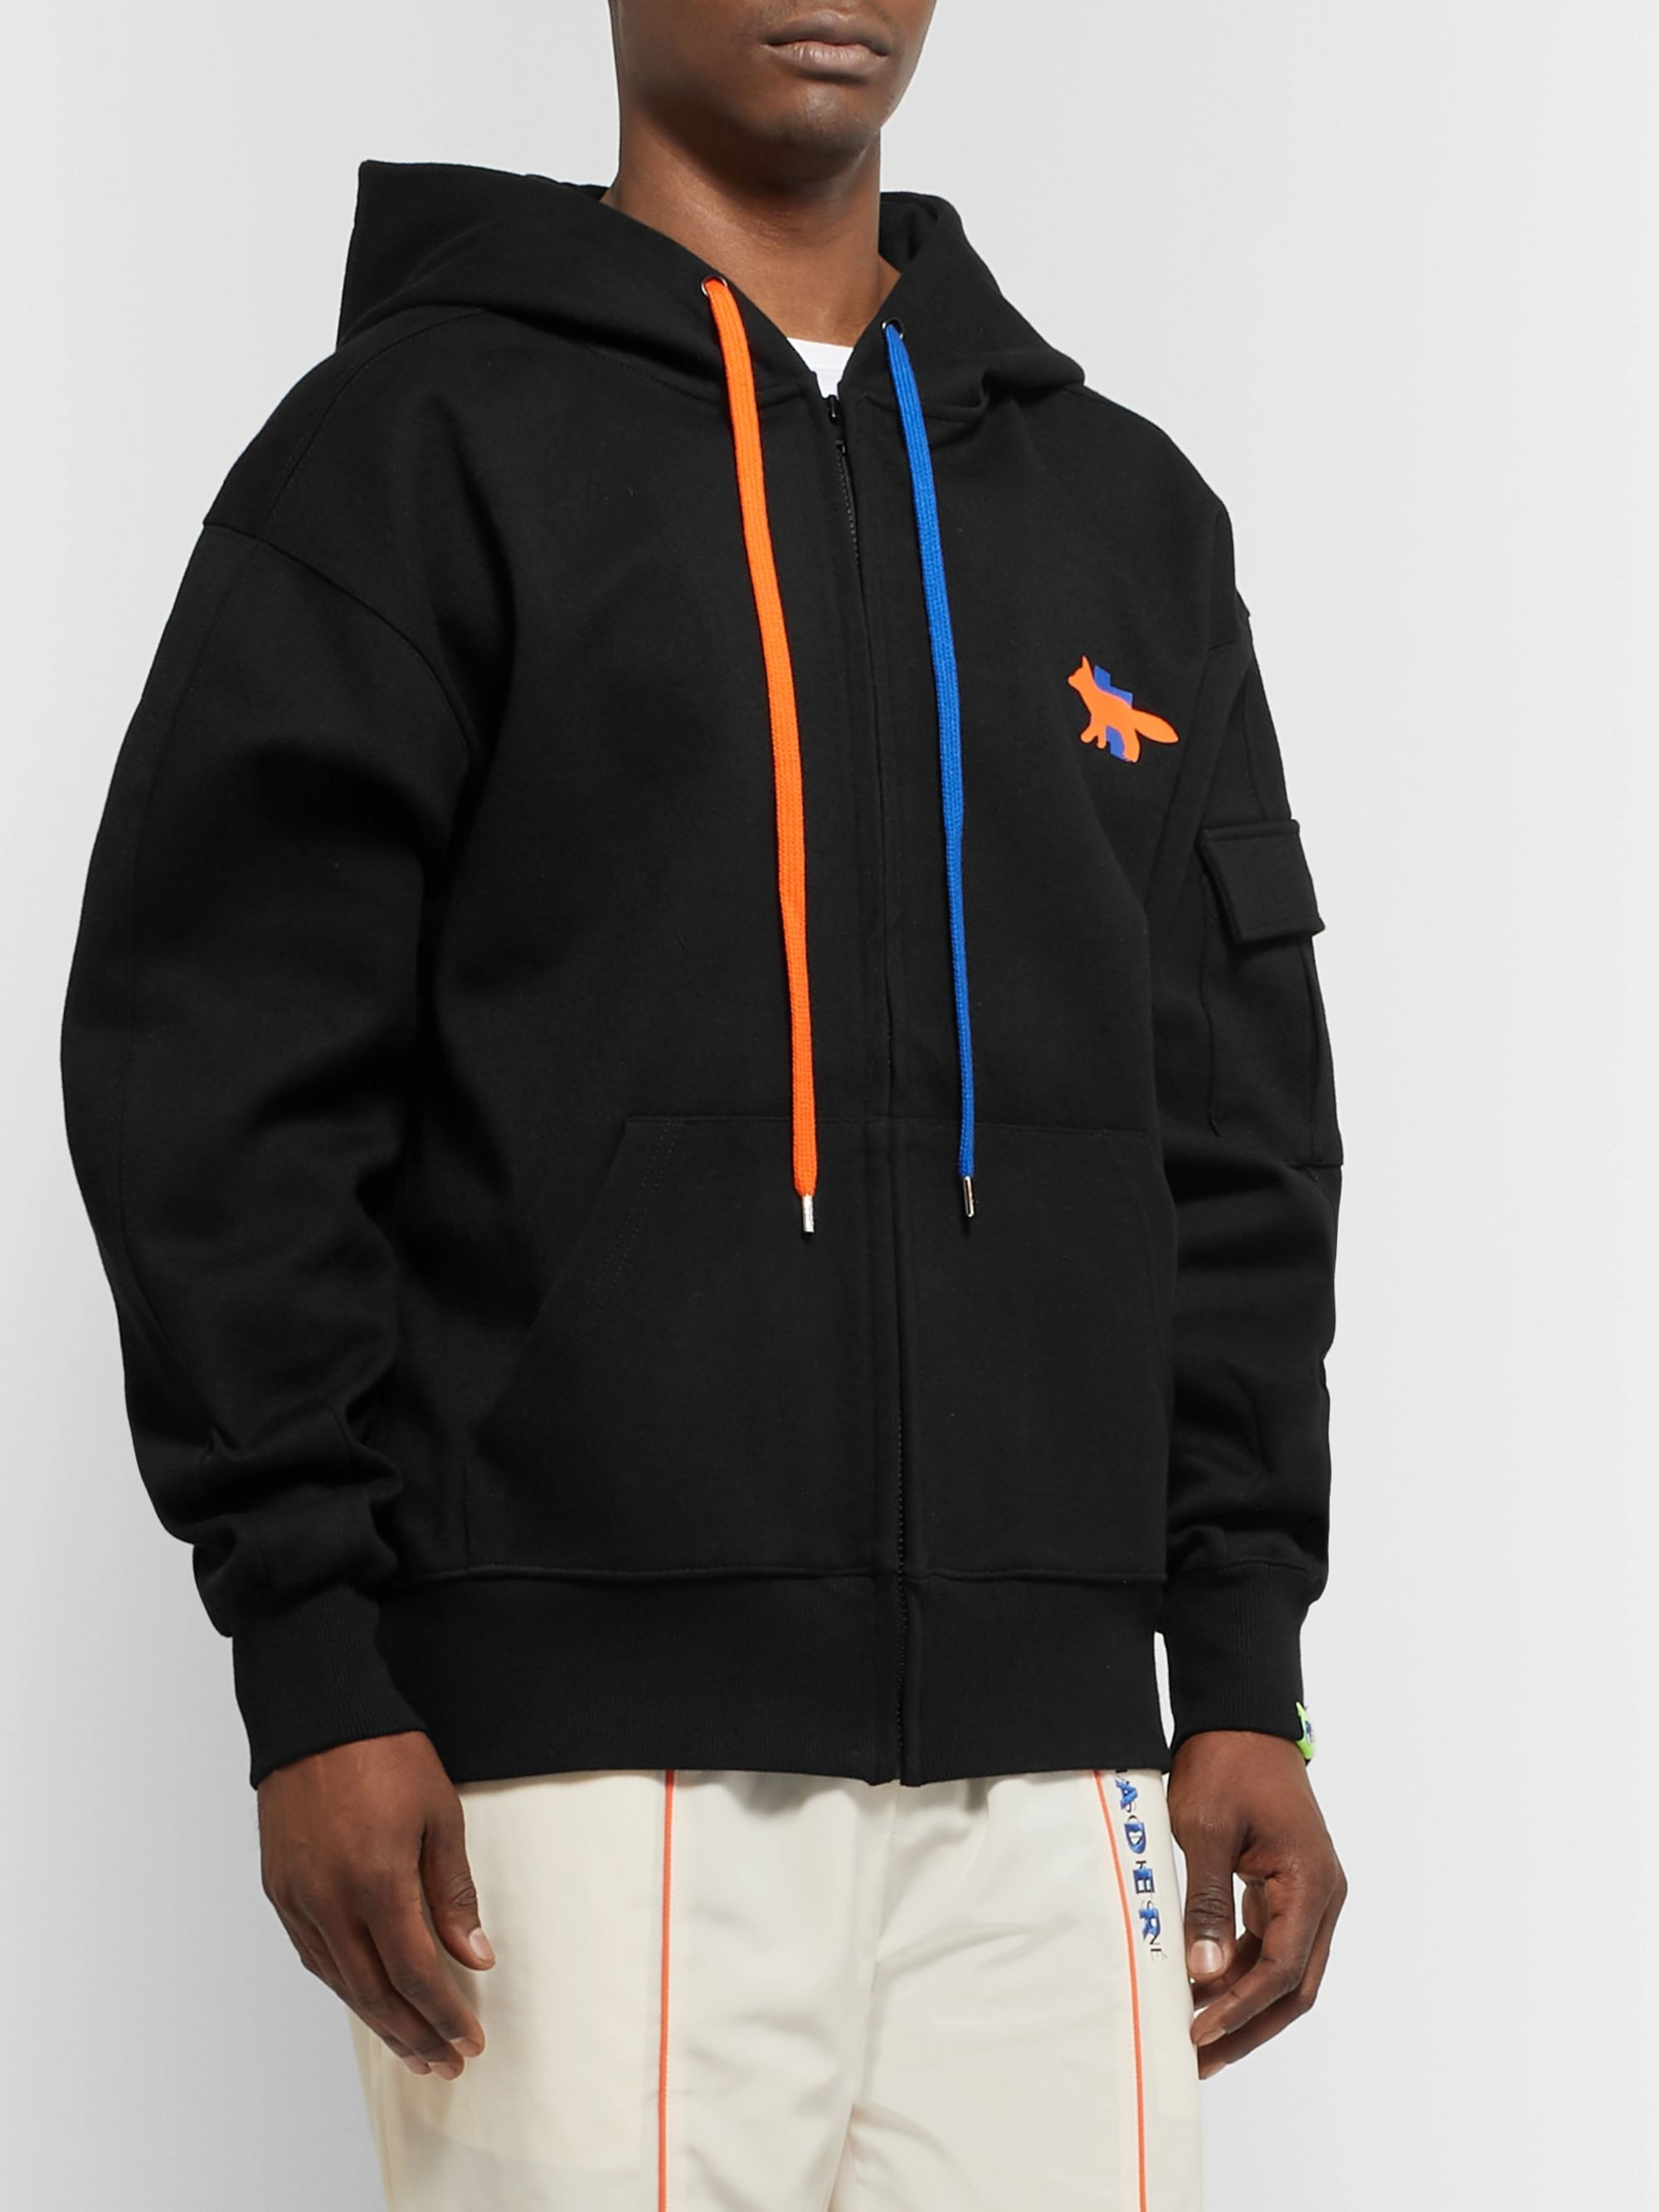 Maison Kitsuné + ADER error Oversized Printed Cotton-Blend Jersey Zip-Up Hoodie